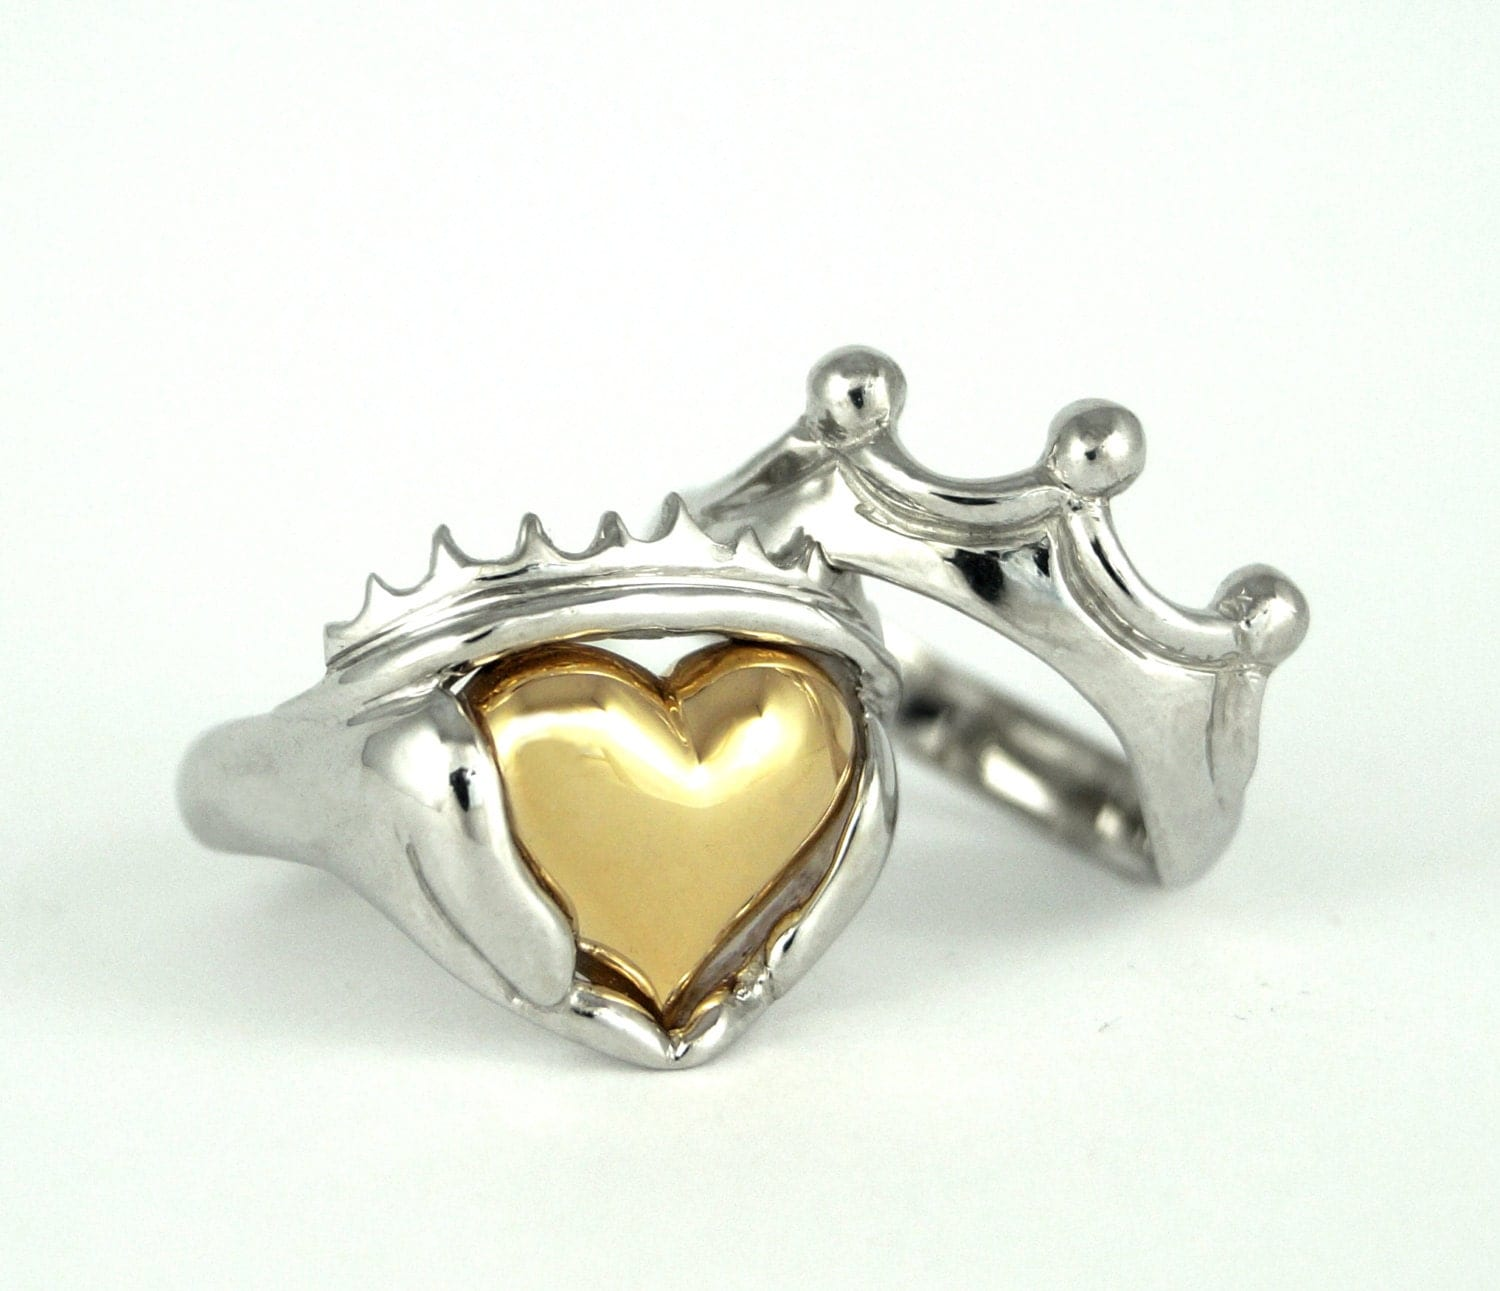 Two Tone Mens Claddagh Wedding And Engagement Ring Set  Handmade Gold  Silver Irish Jewelry, White Yellow Gold Or Platinum, Stacking Ring